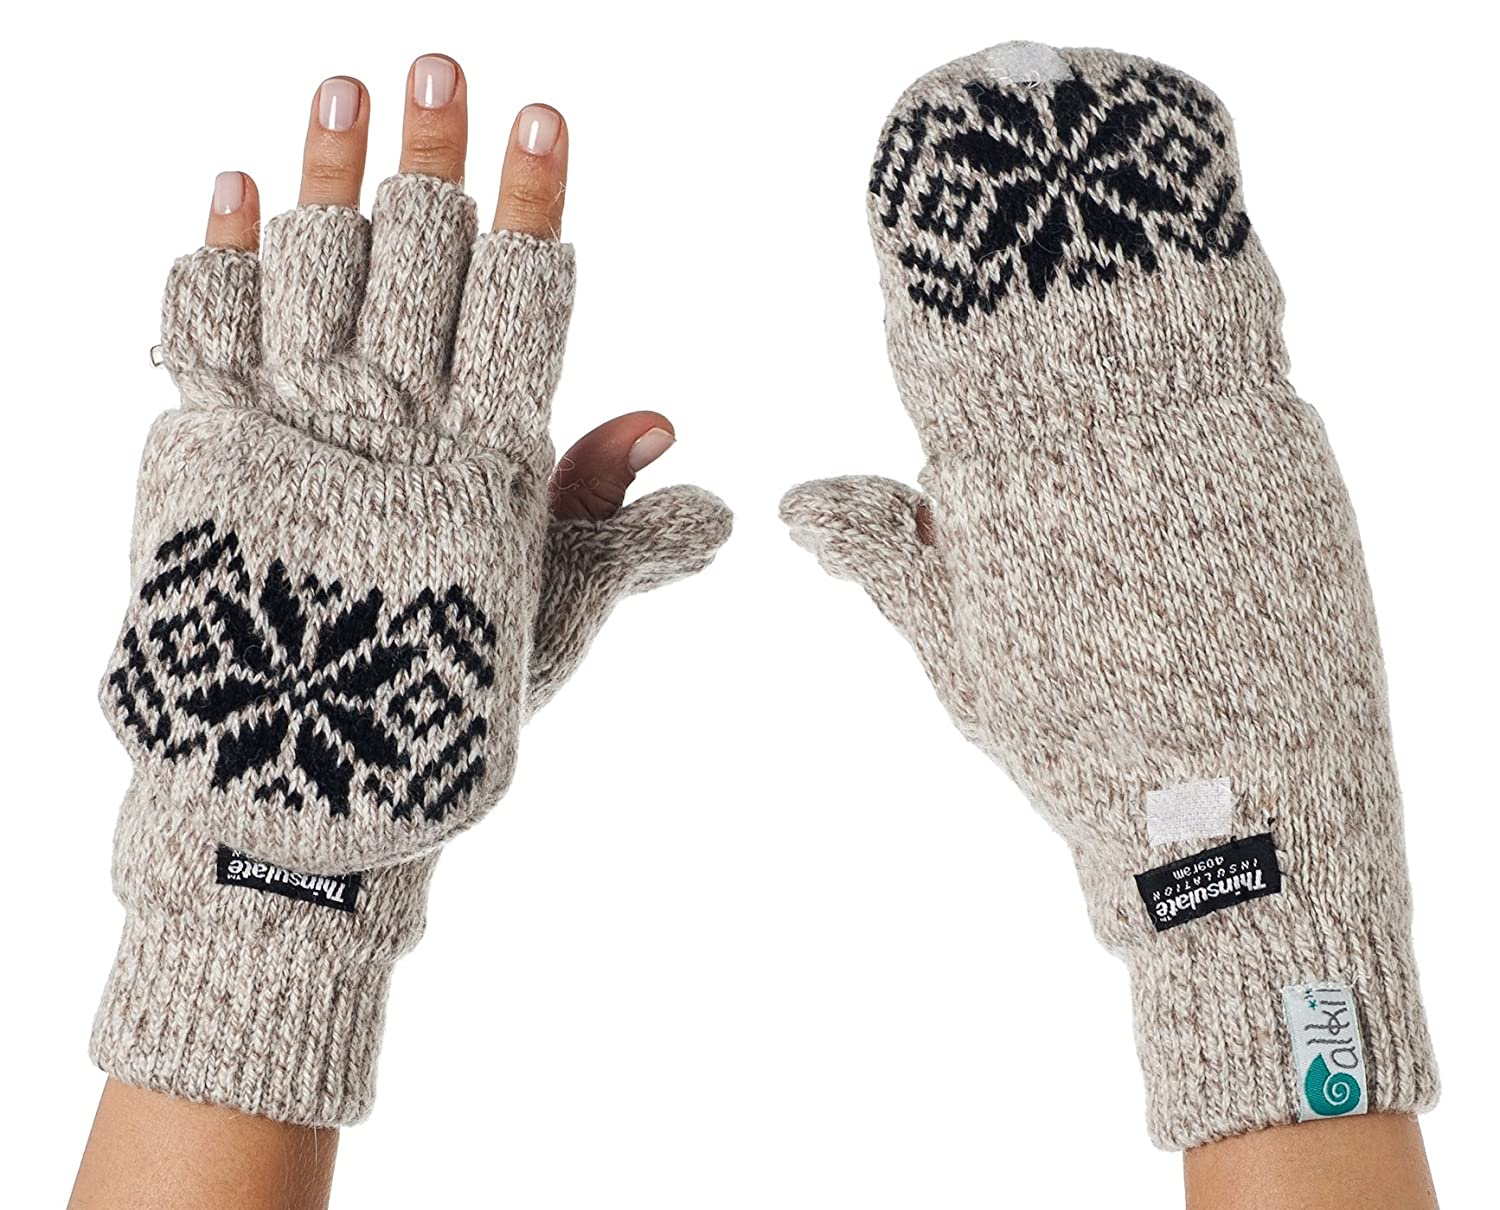 Alki'i 3M Thinsulate Thermal Insulation Fingerless Texting Gloves with Mitten Cover - Grey